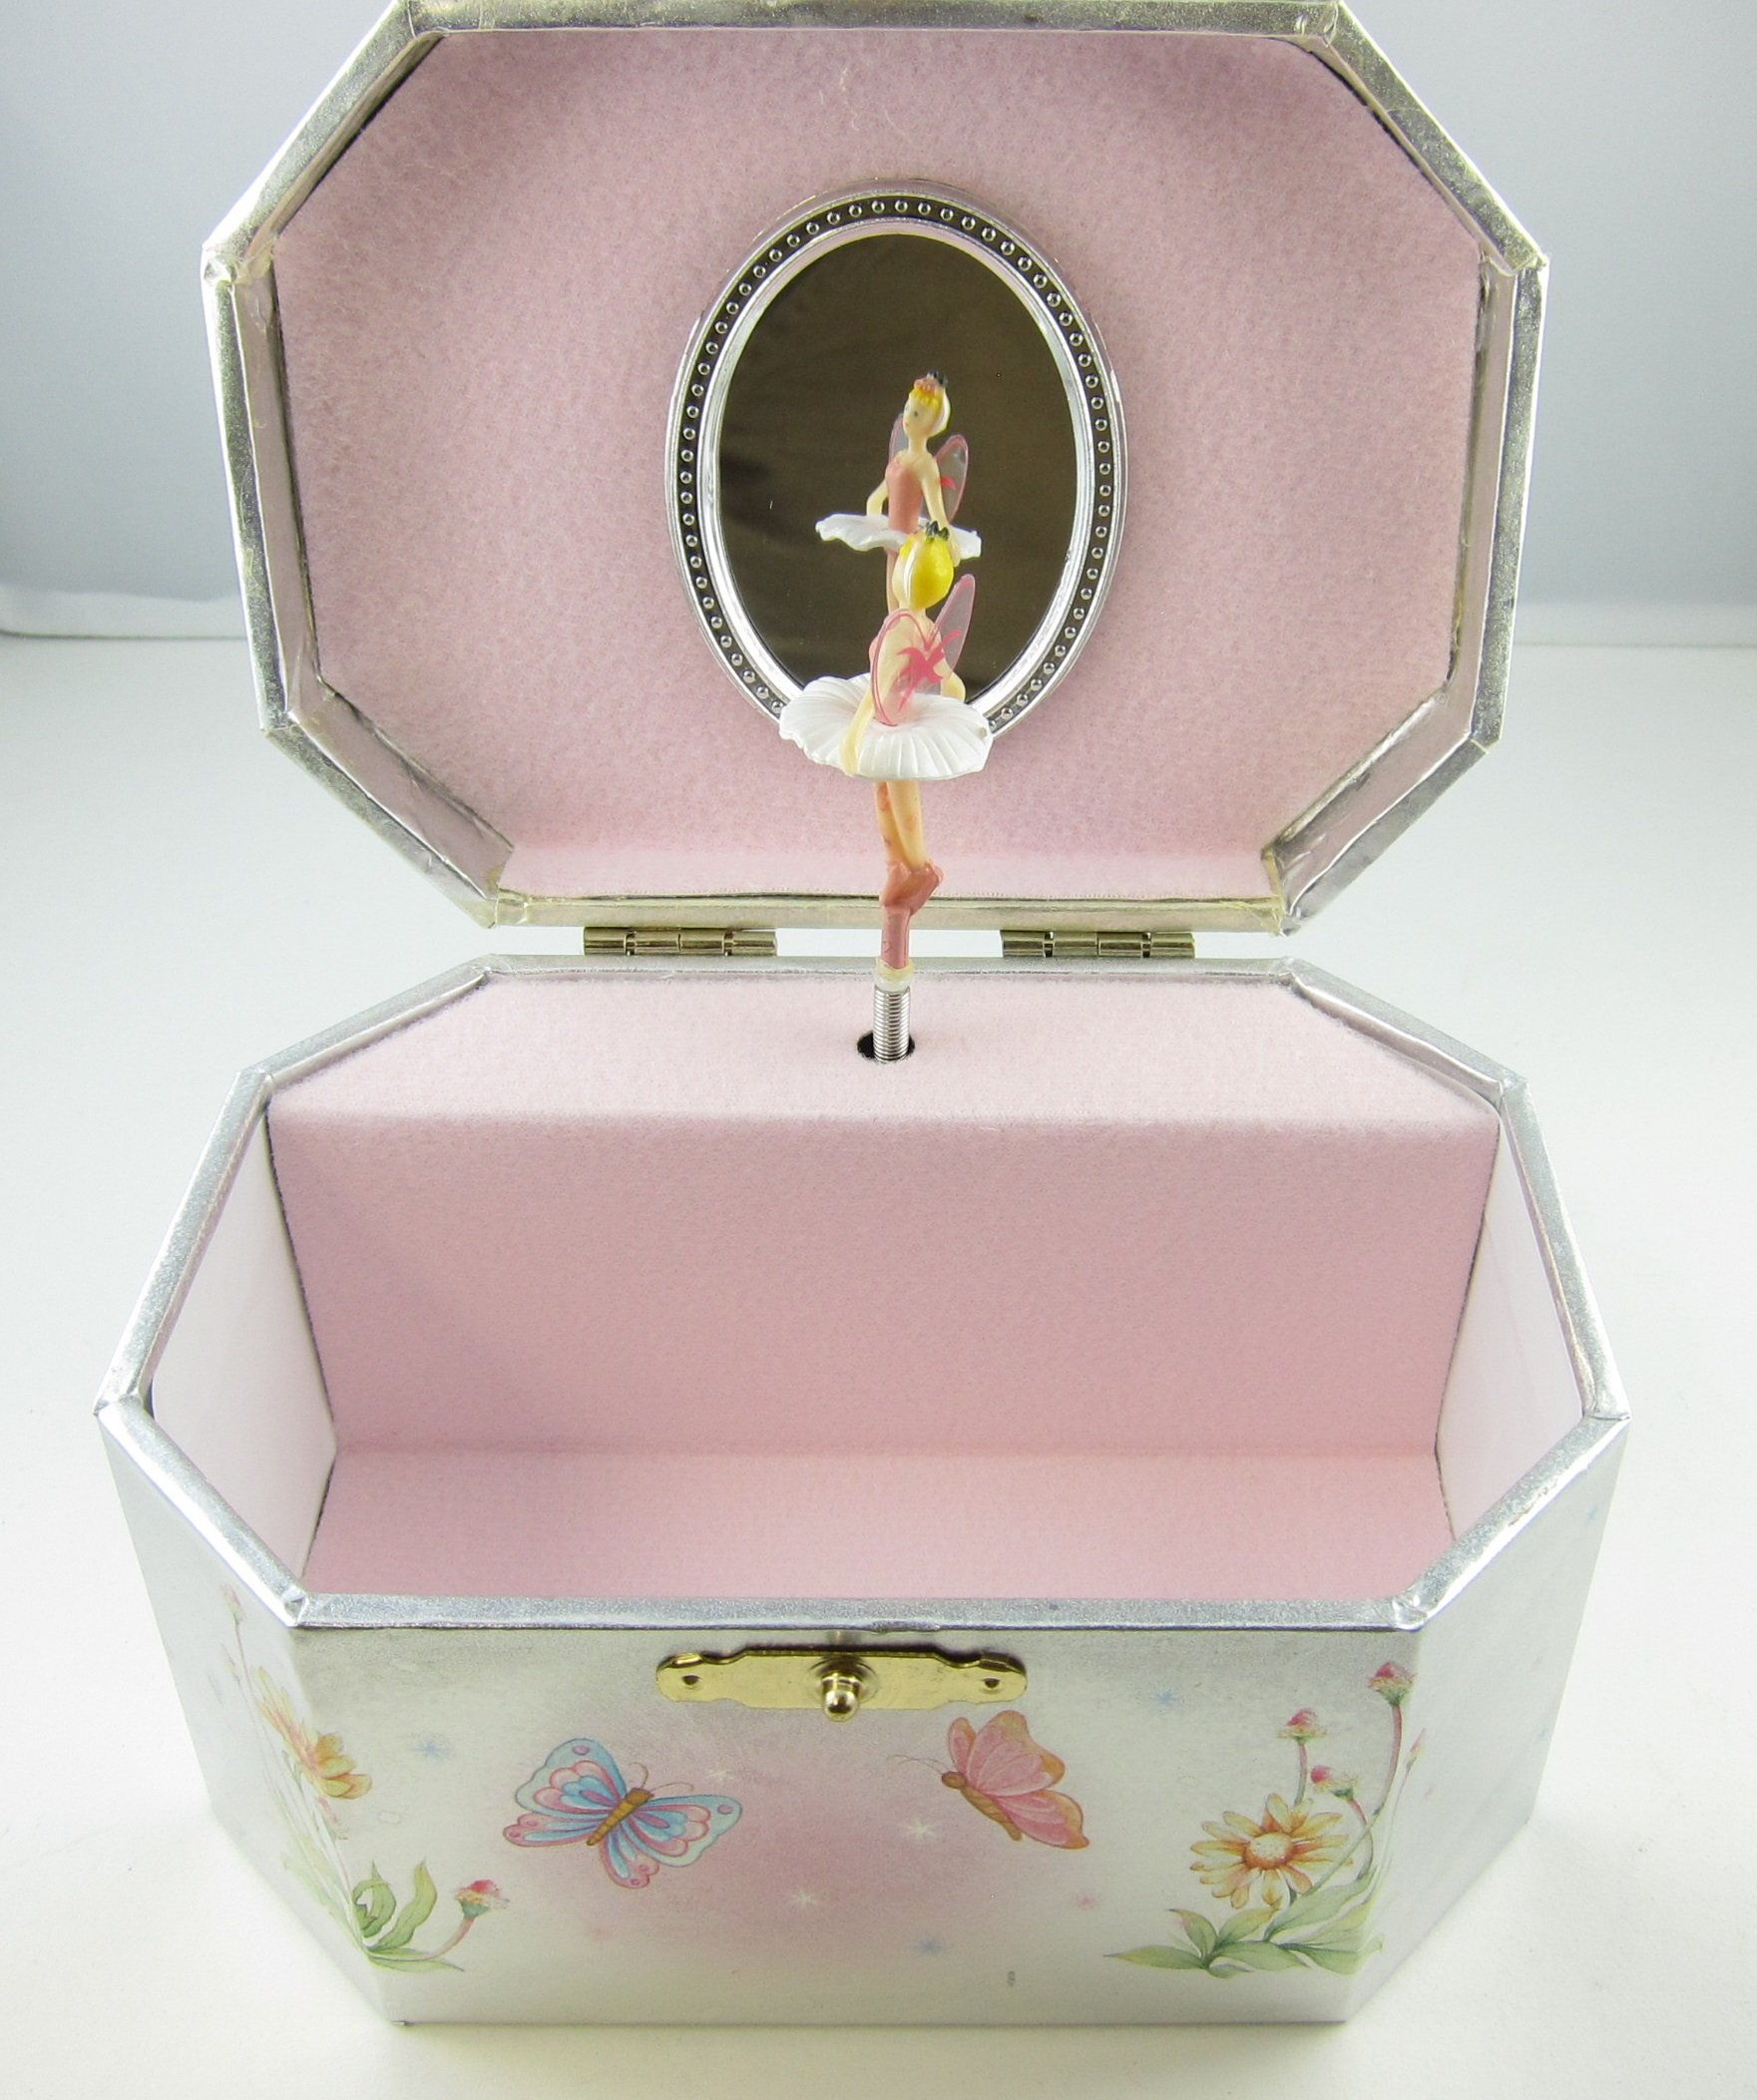 Fairy Ballerina Jewelry Music Box-Wooden material (Wood) by GTP (Image #3)